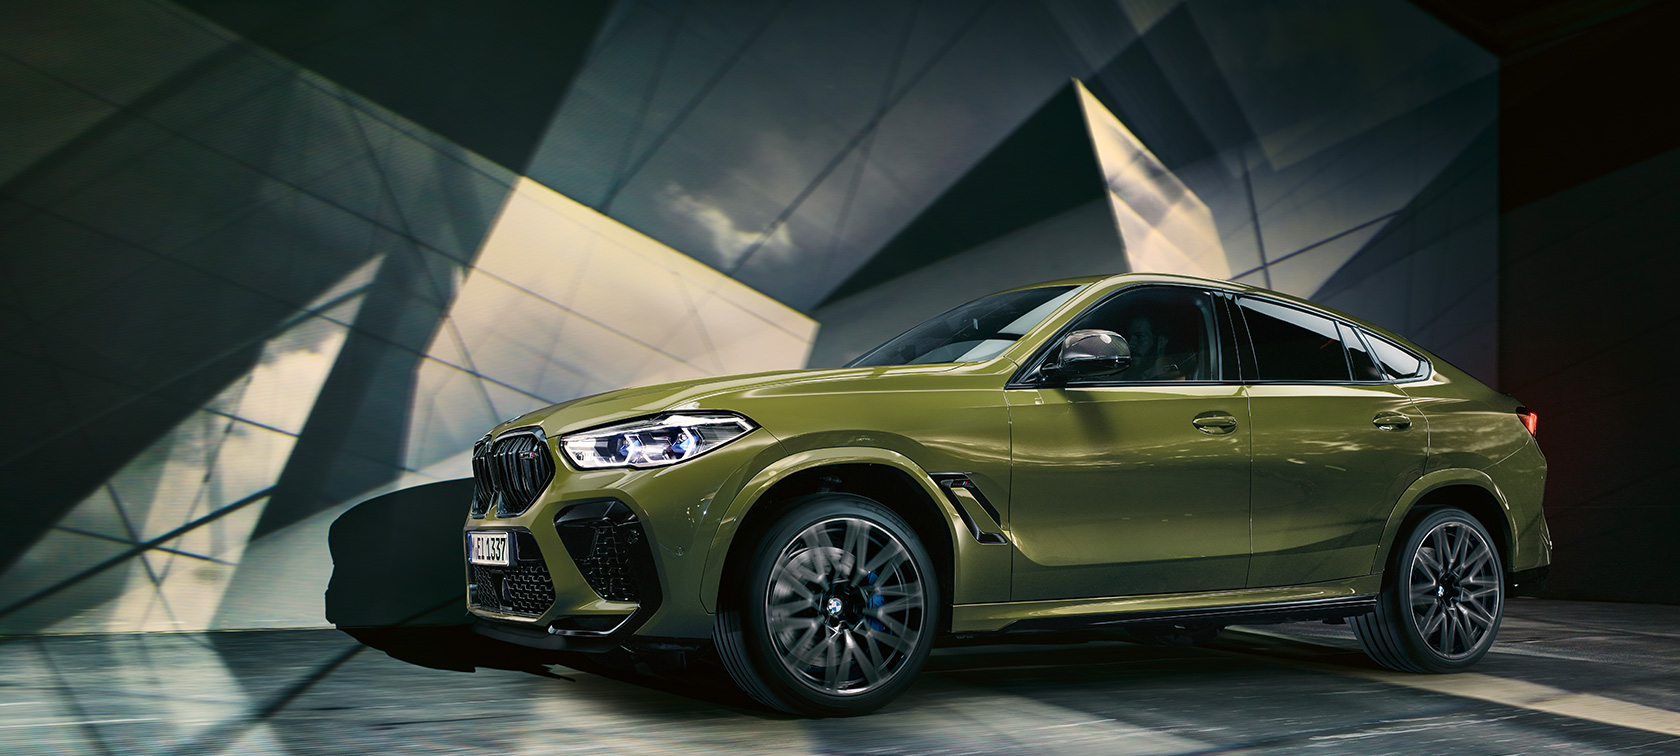 The BMW X6 M Automobiles BMW Individual Special Paint Urban Green F96 2020